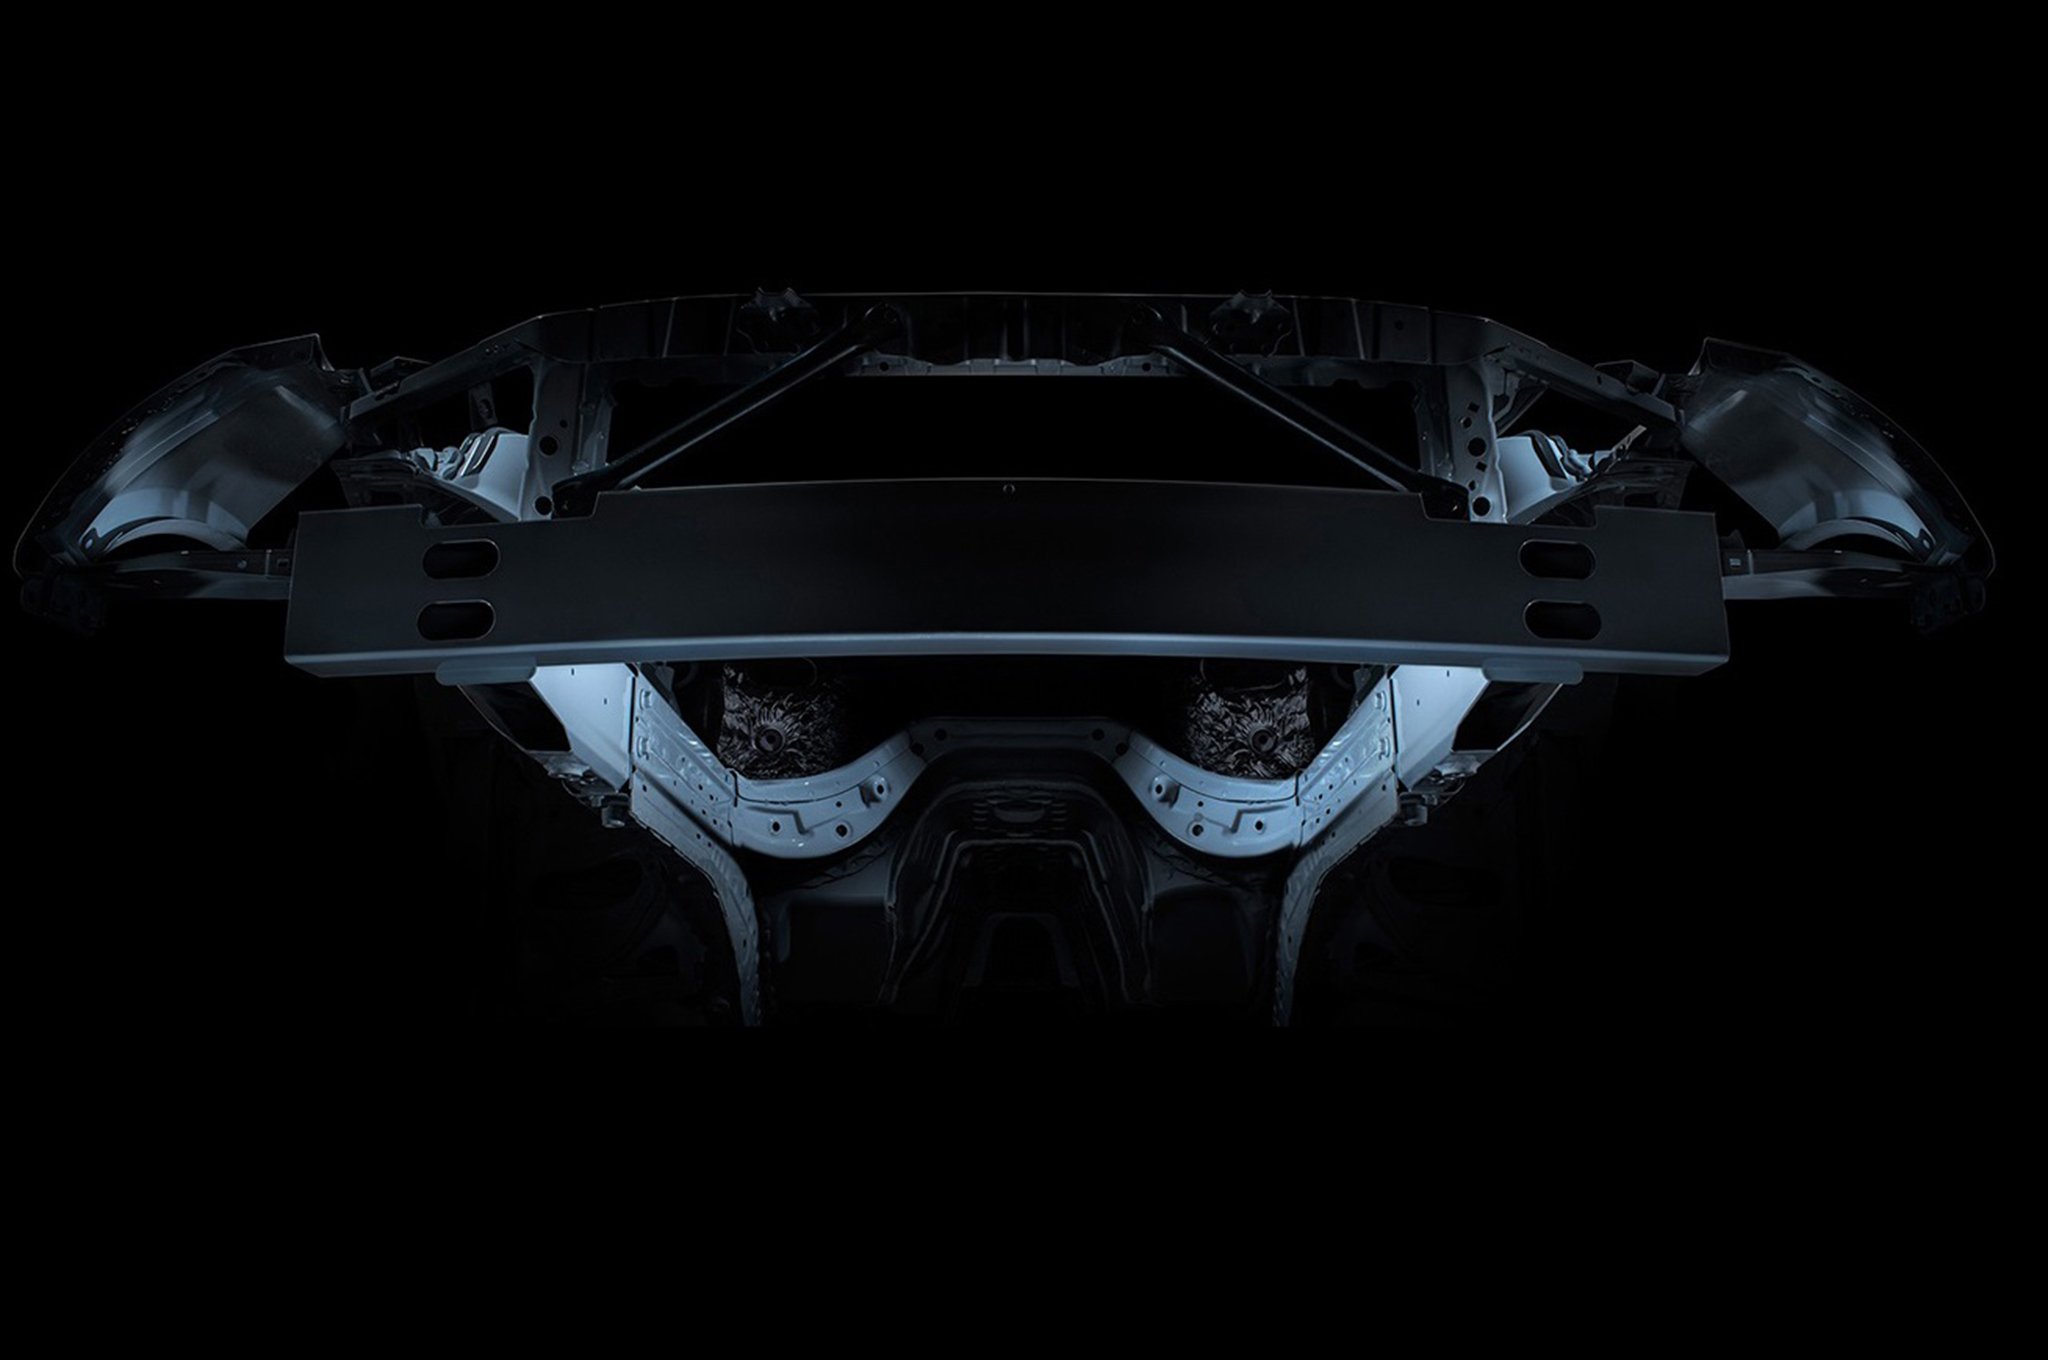 The Gen 6's all-new structure is based on the rigid platform used for the Cadillac ATS, but with about 70 percent unique components for the Camaro. It's 28 percent stiffer than the Gen 5 structure and the body in white is a full 133 pounds lighter.